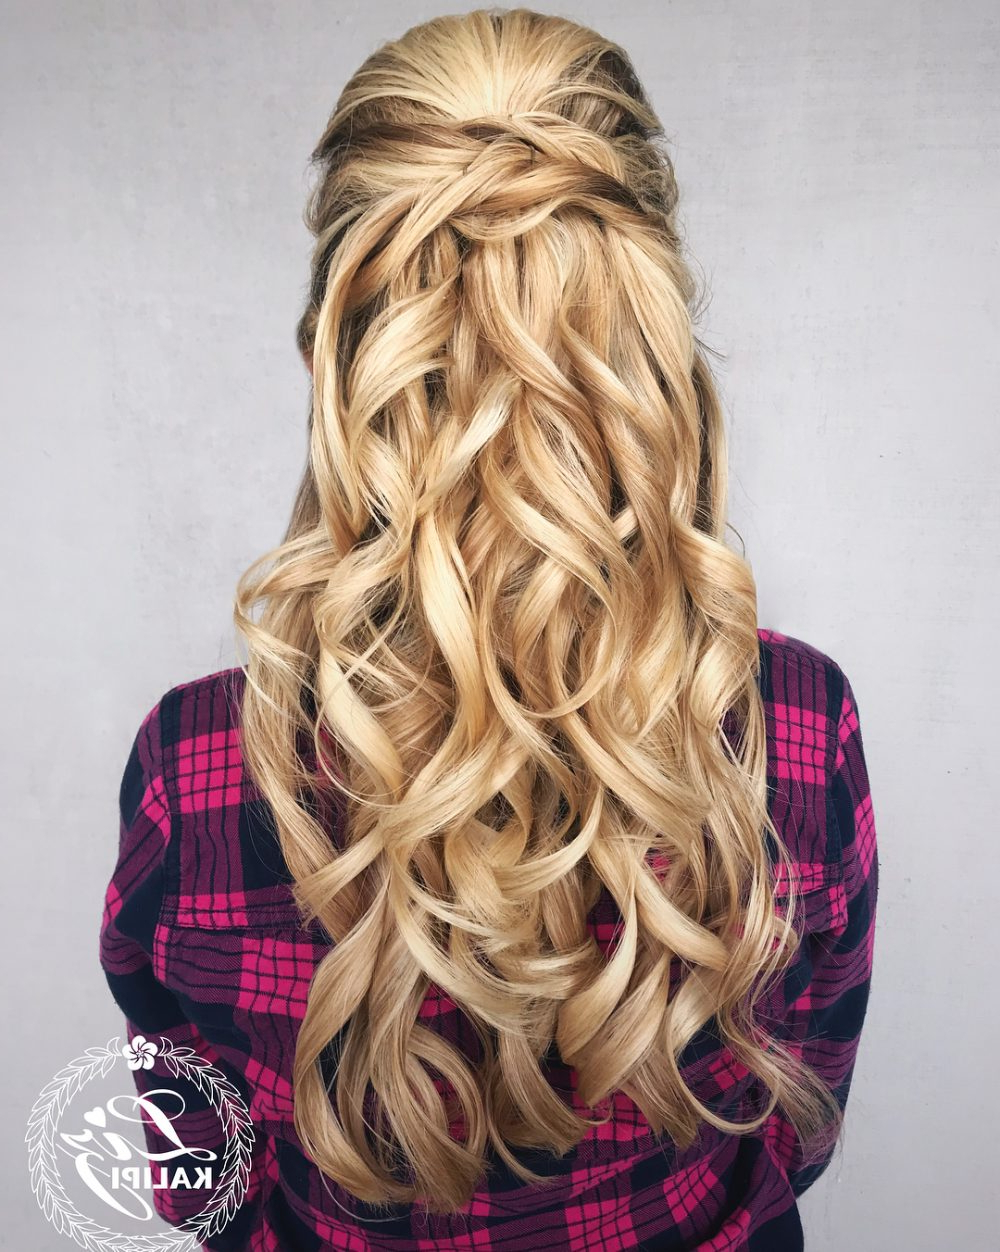 Widely Used Gorgeous Waved Prom Updos For Long Hair Pertaining To 31 Prom Hairstyles For Long Hair That Are Gorgeous In 2019 (Gallery 1 of 20)